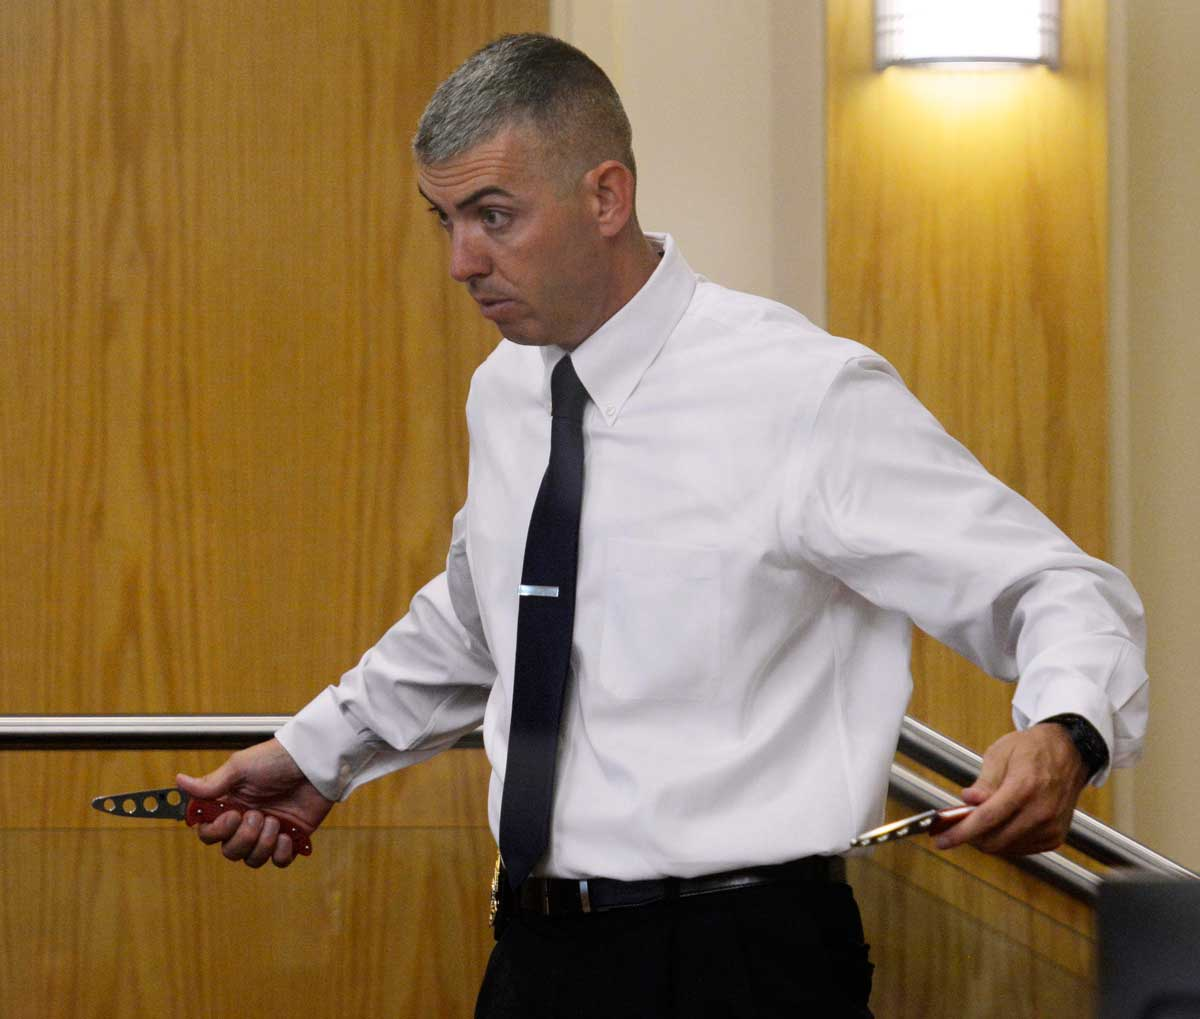 Albuquerque Police Sgt. Richard Ingram shows the jury how James Boyd would pull out two knives from his pockets. Greg Sorber / Albuquerque Journal